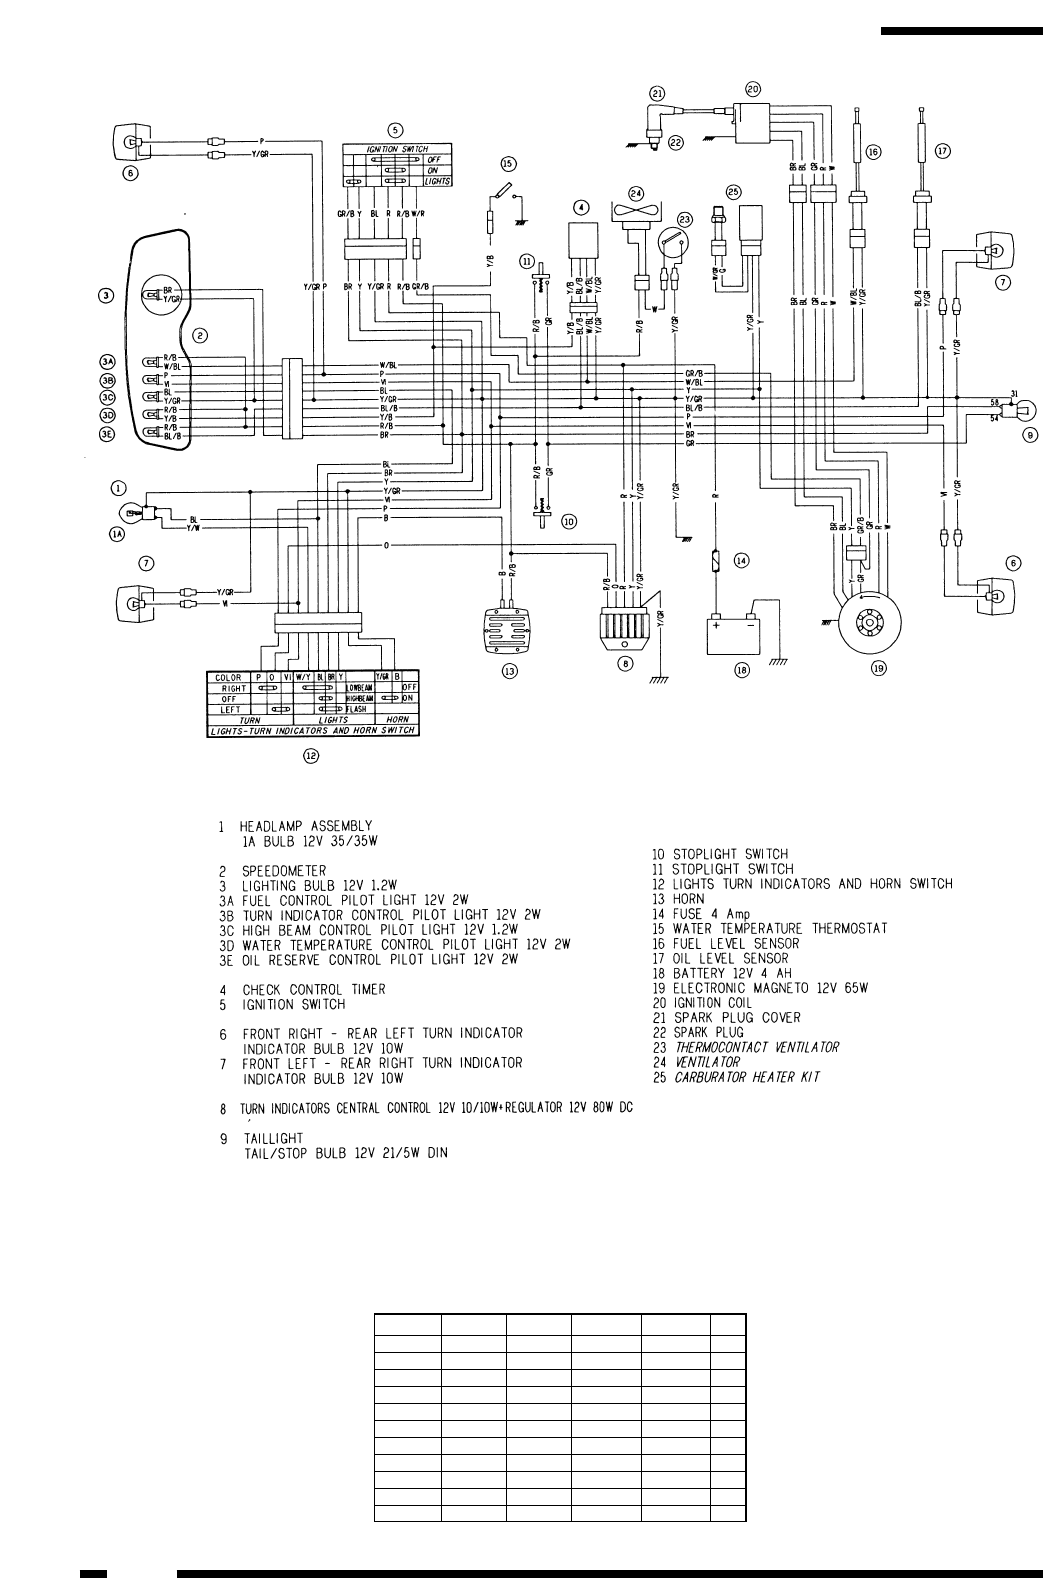 Xtreme Wingman Wiring Diagram | Wiring Liry on crown victoria fuel filter, crown victoria starter, crown victoria oil filter, crown victoria map sensor, crown victoria speaker, crown victoria speedometer, crown victoria turbocharger, crown victoria trunk lid, crown victoria radiator, crown victoria alternator, crown victoria blower motor, crown victoria intake, crown victoria wiper motor, crown victoria ignition cylinder, crown victoria water pump, crown victoria crossmember, crown victoria head unit, crown victoria bumpers, crown victoria kill switch, crown victoria ignition switch,